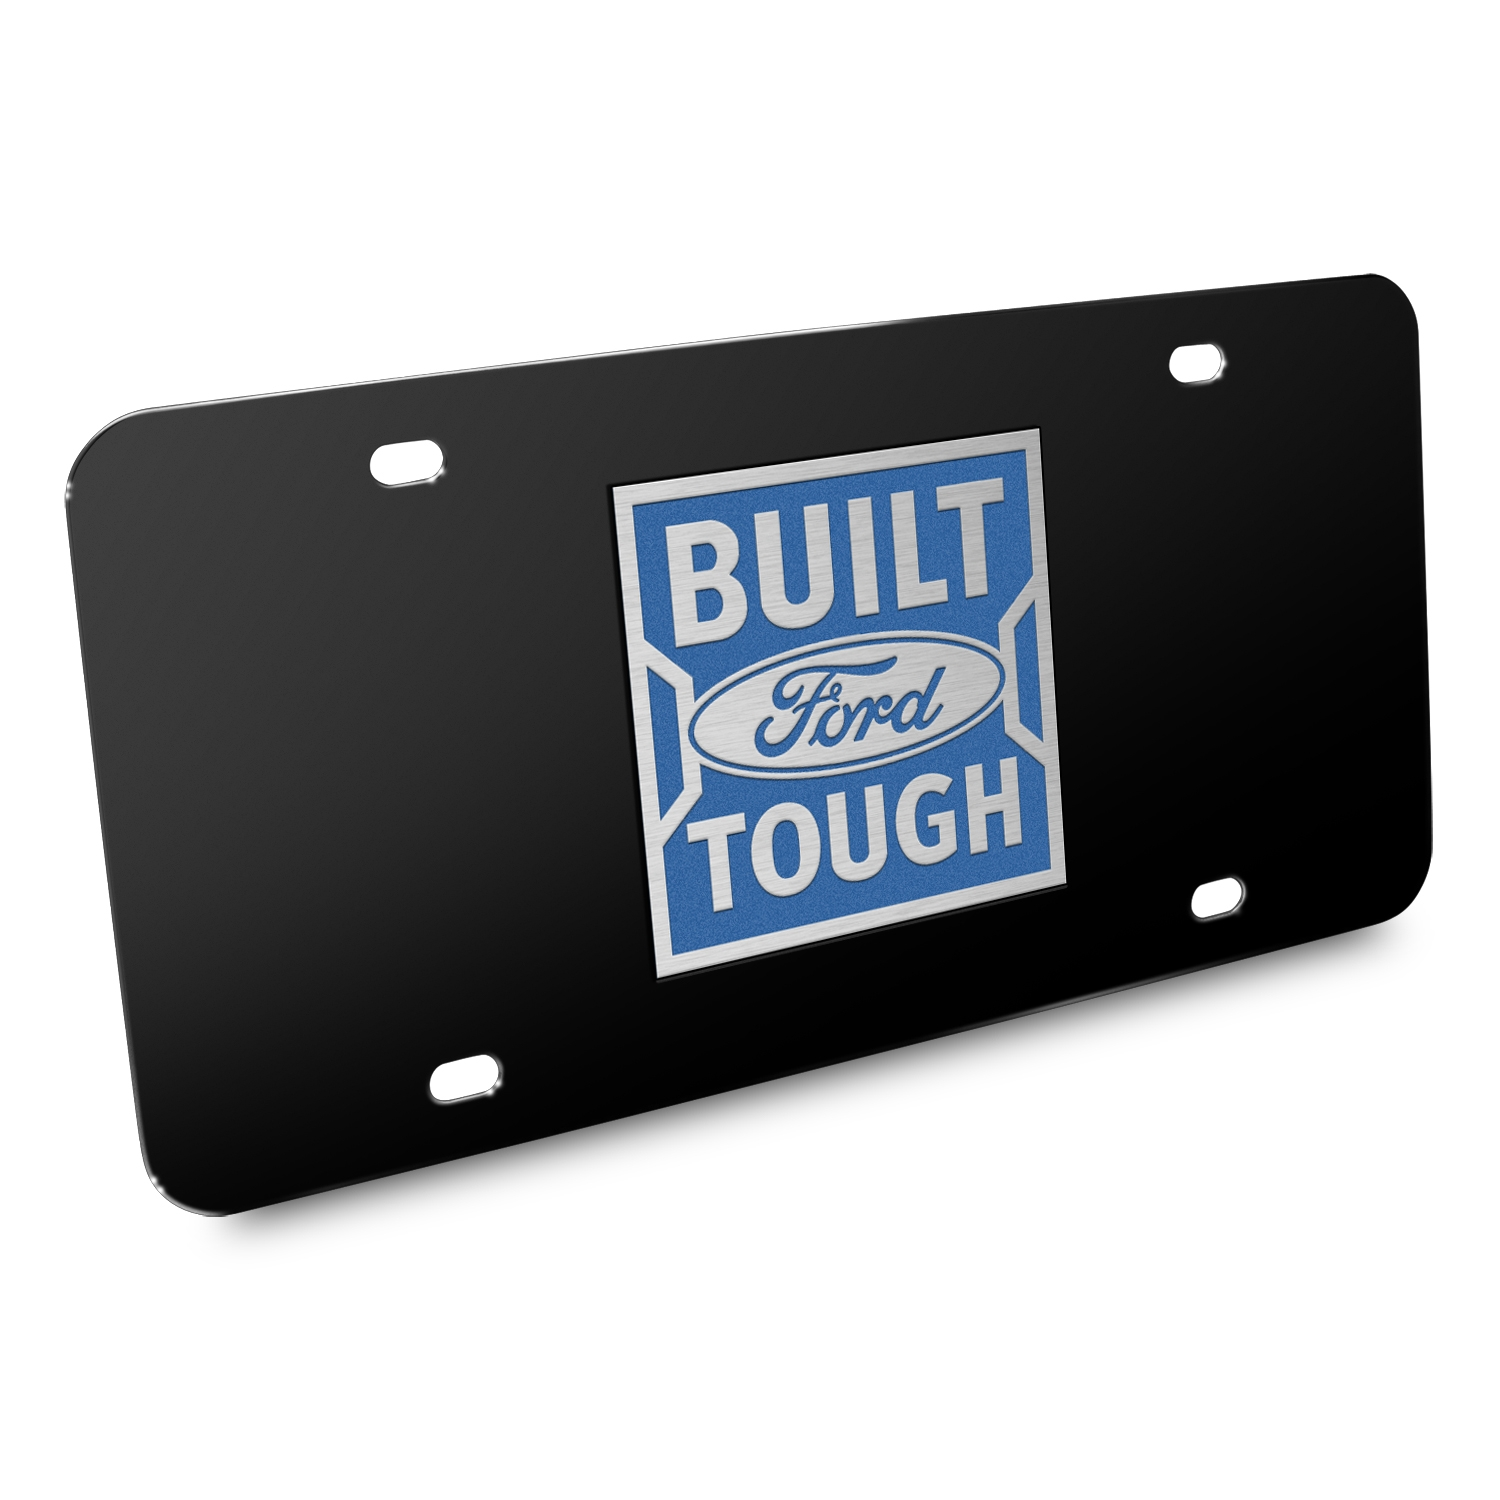 Ford Built Ford Tough in Blue 3D Black Stainless Steel License Plate